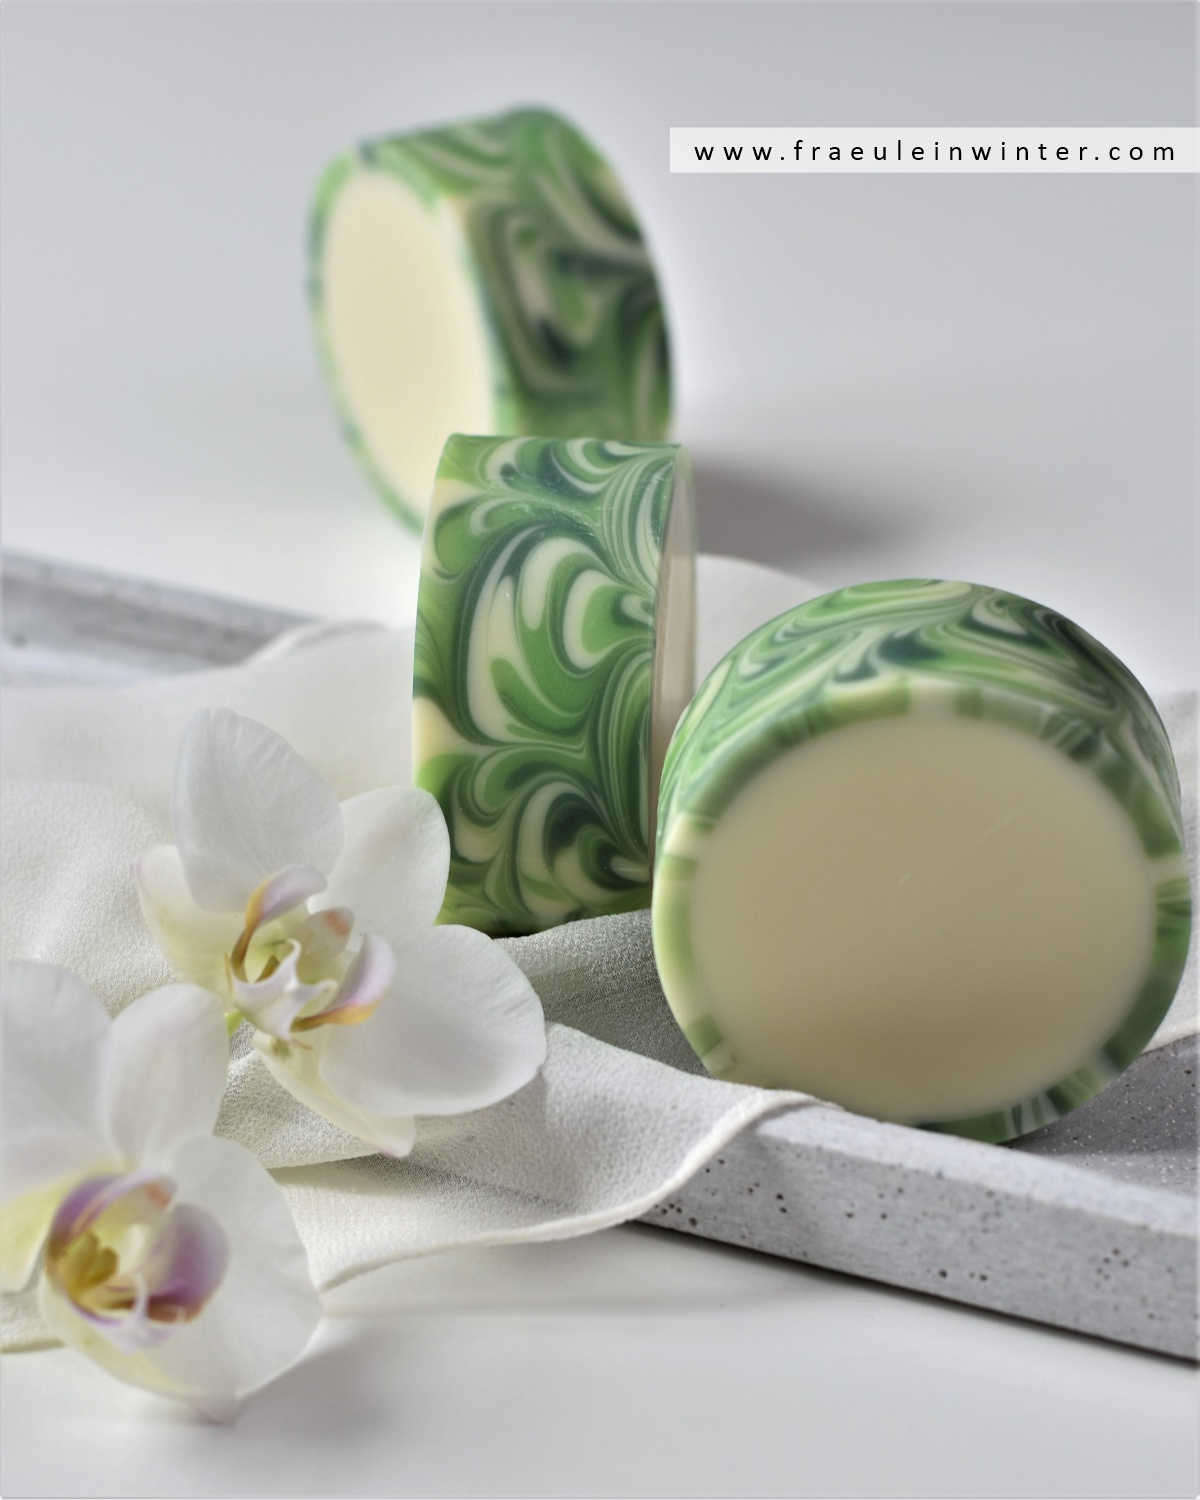 Vegan Rimmed Soap